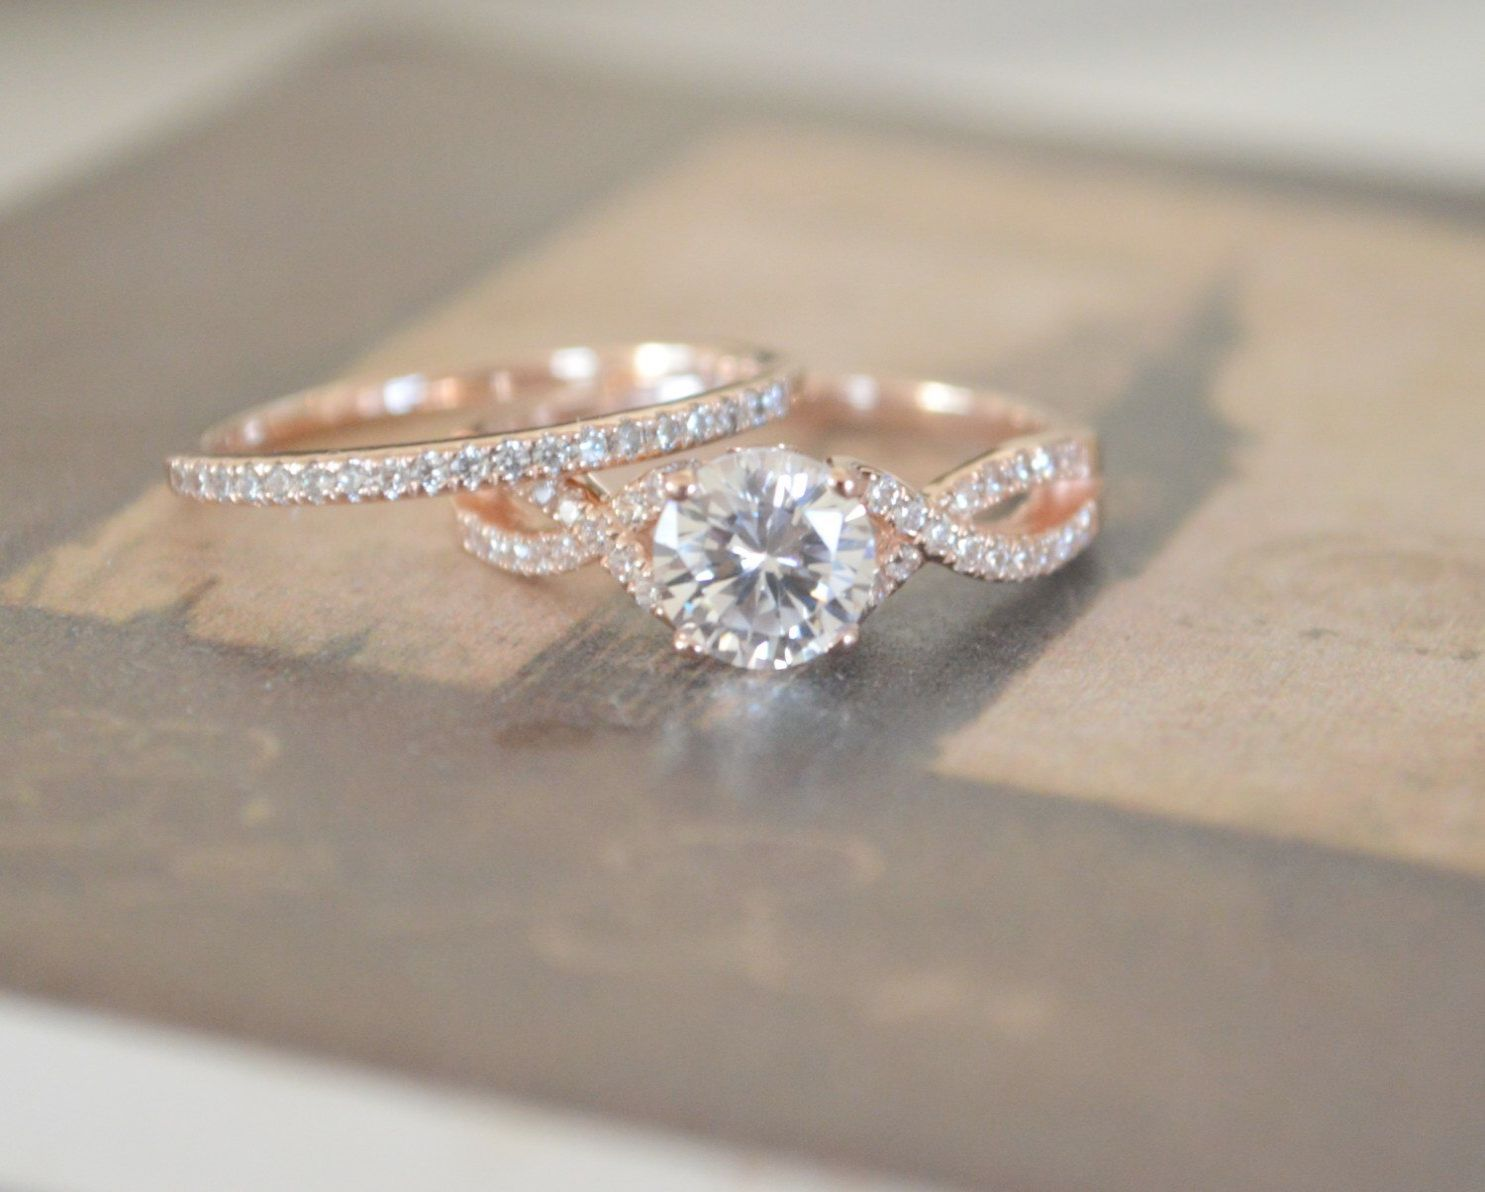 5a9c1f98a1d7e Get some -> Best Engagement Rings Under 500 :-D   Wedding in 2019 ...